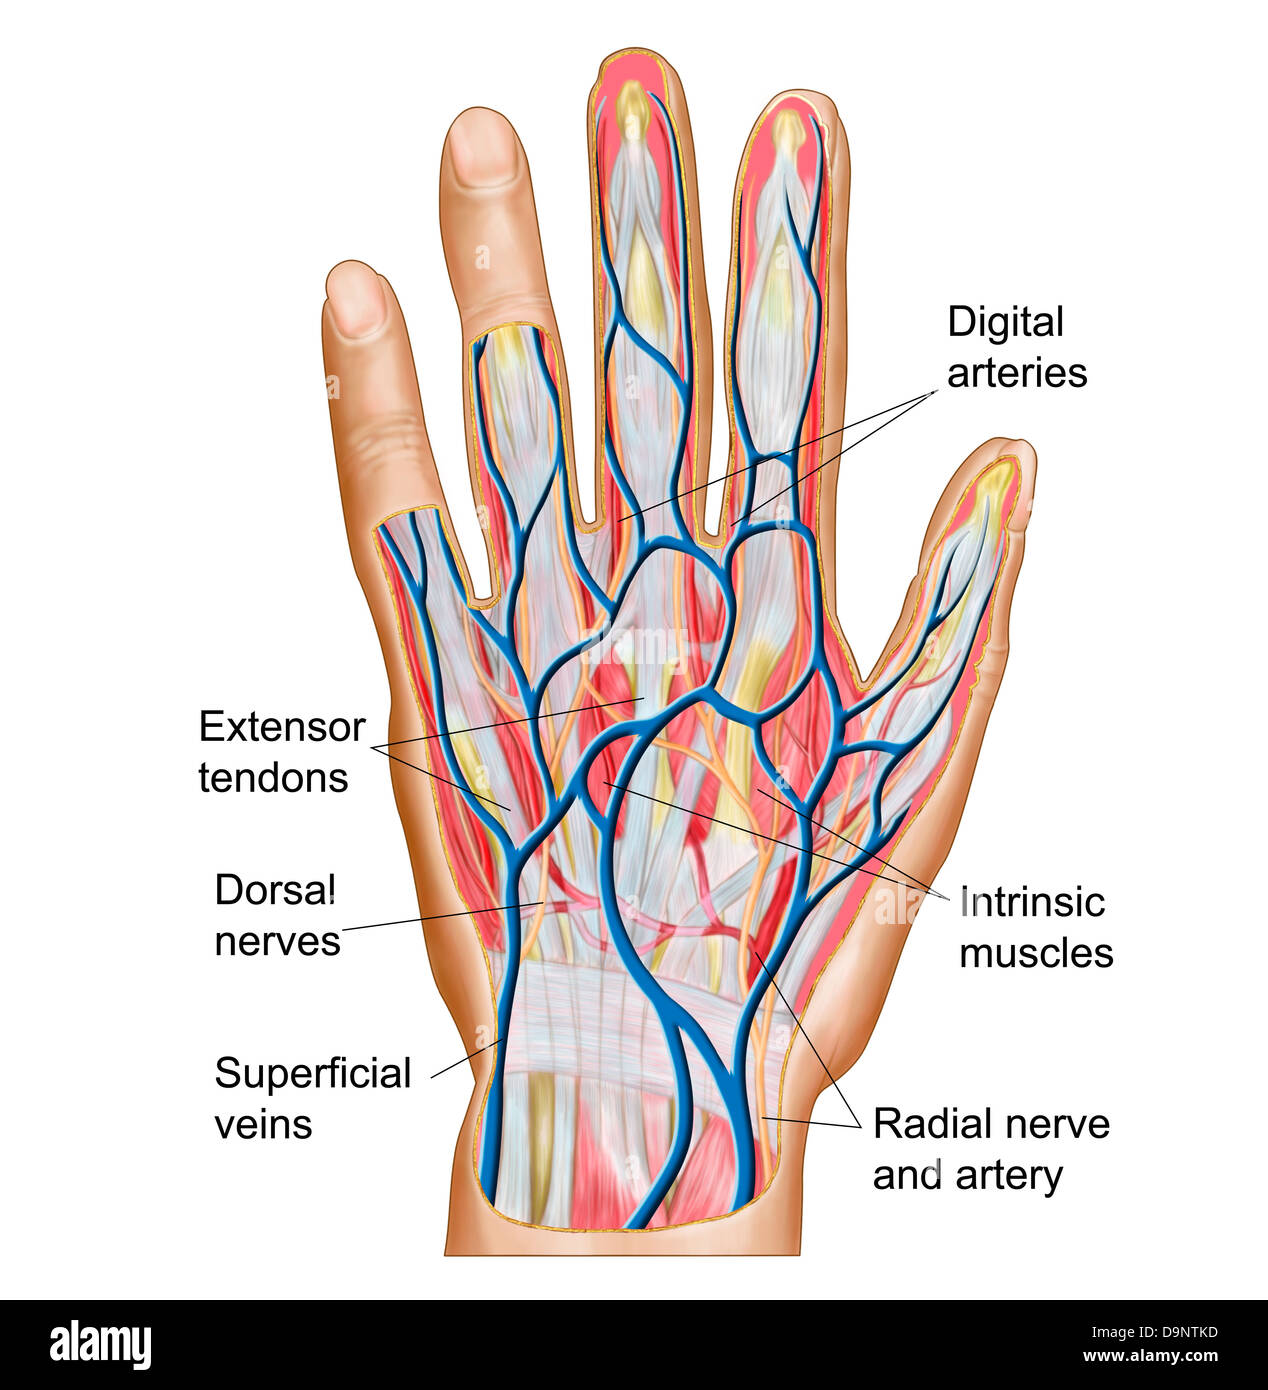 Anatomy of back of human hand Stock Photo: 57643361 - Alamy